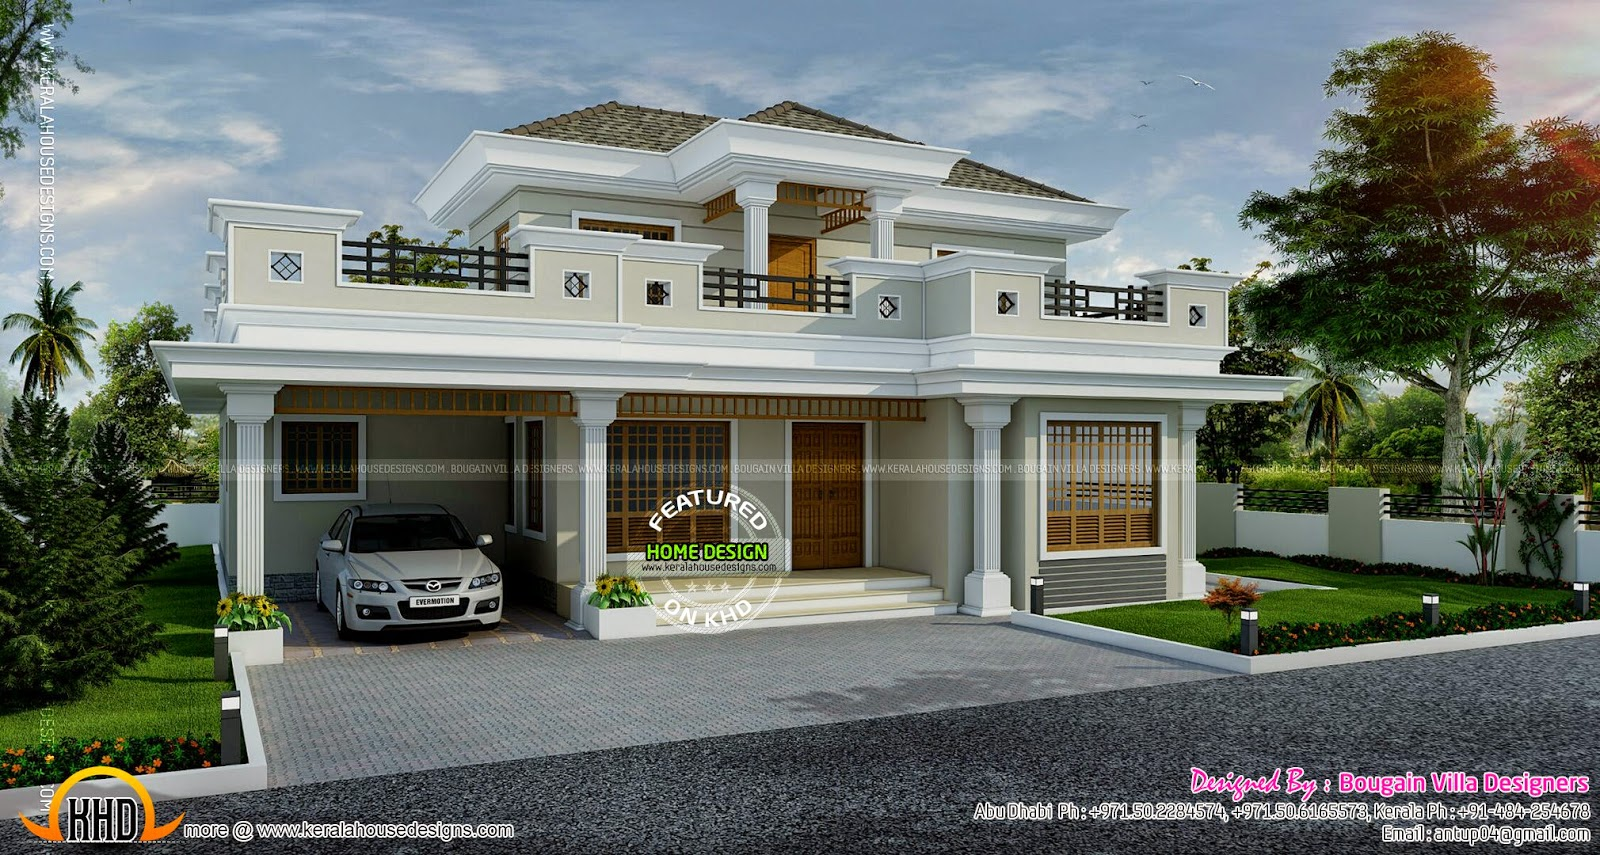 Stylish house exterior kerala home design and floor plans for Home exterior design images